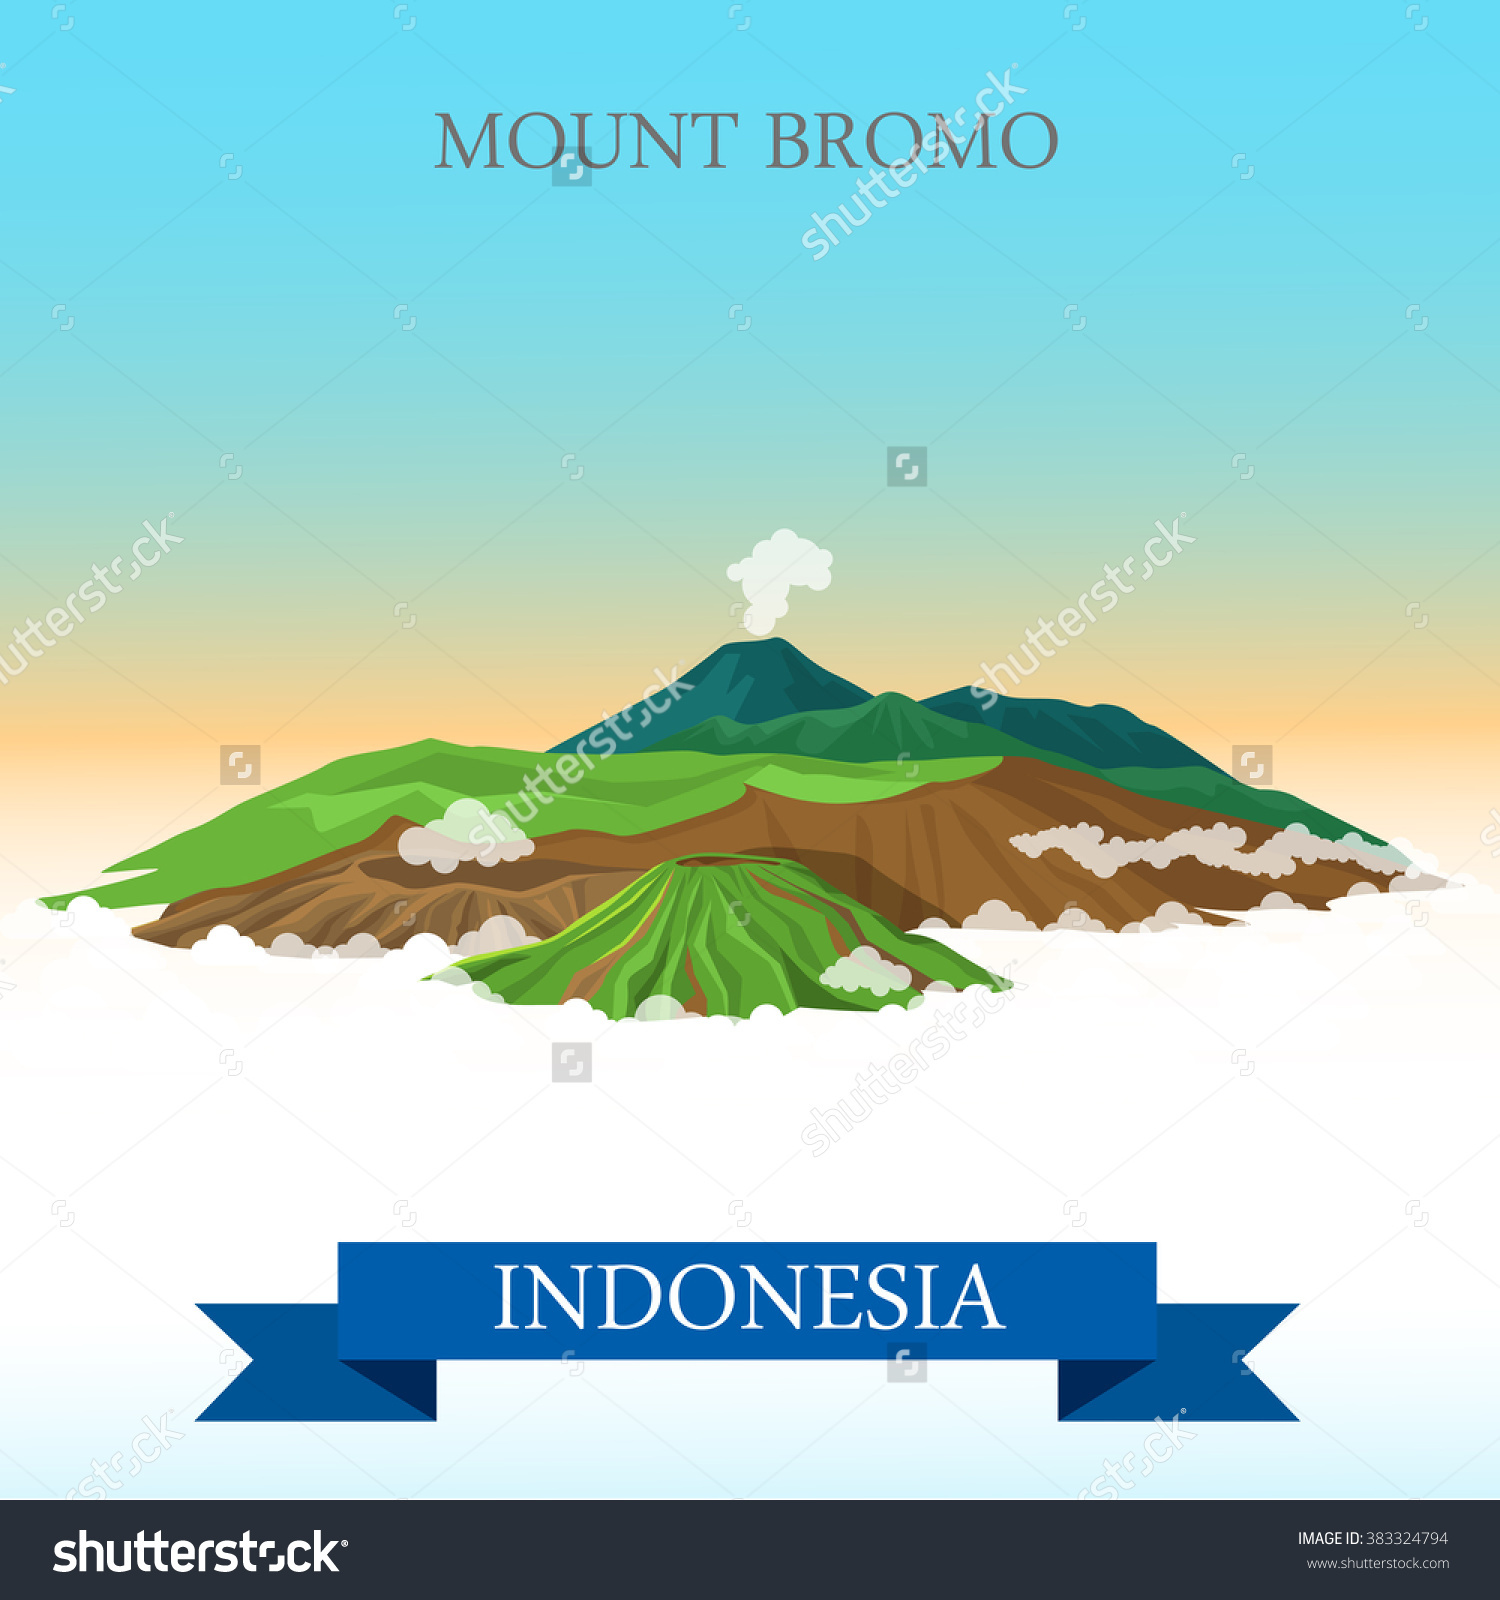 Mount Bromo clipart #1, Download drawings